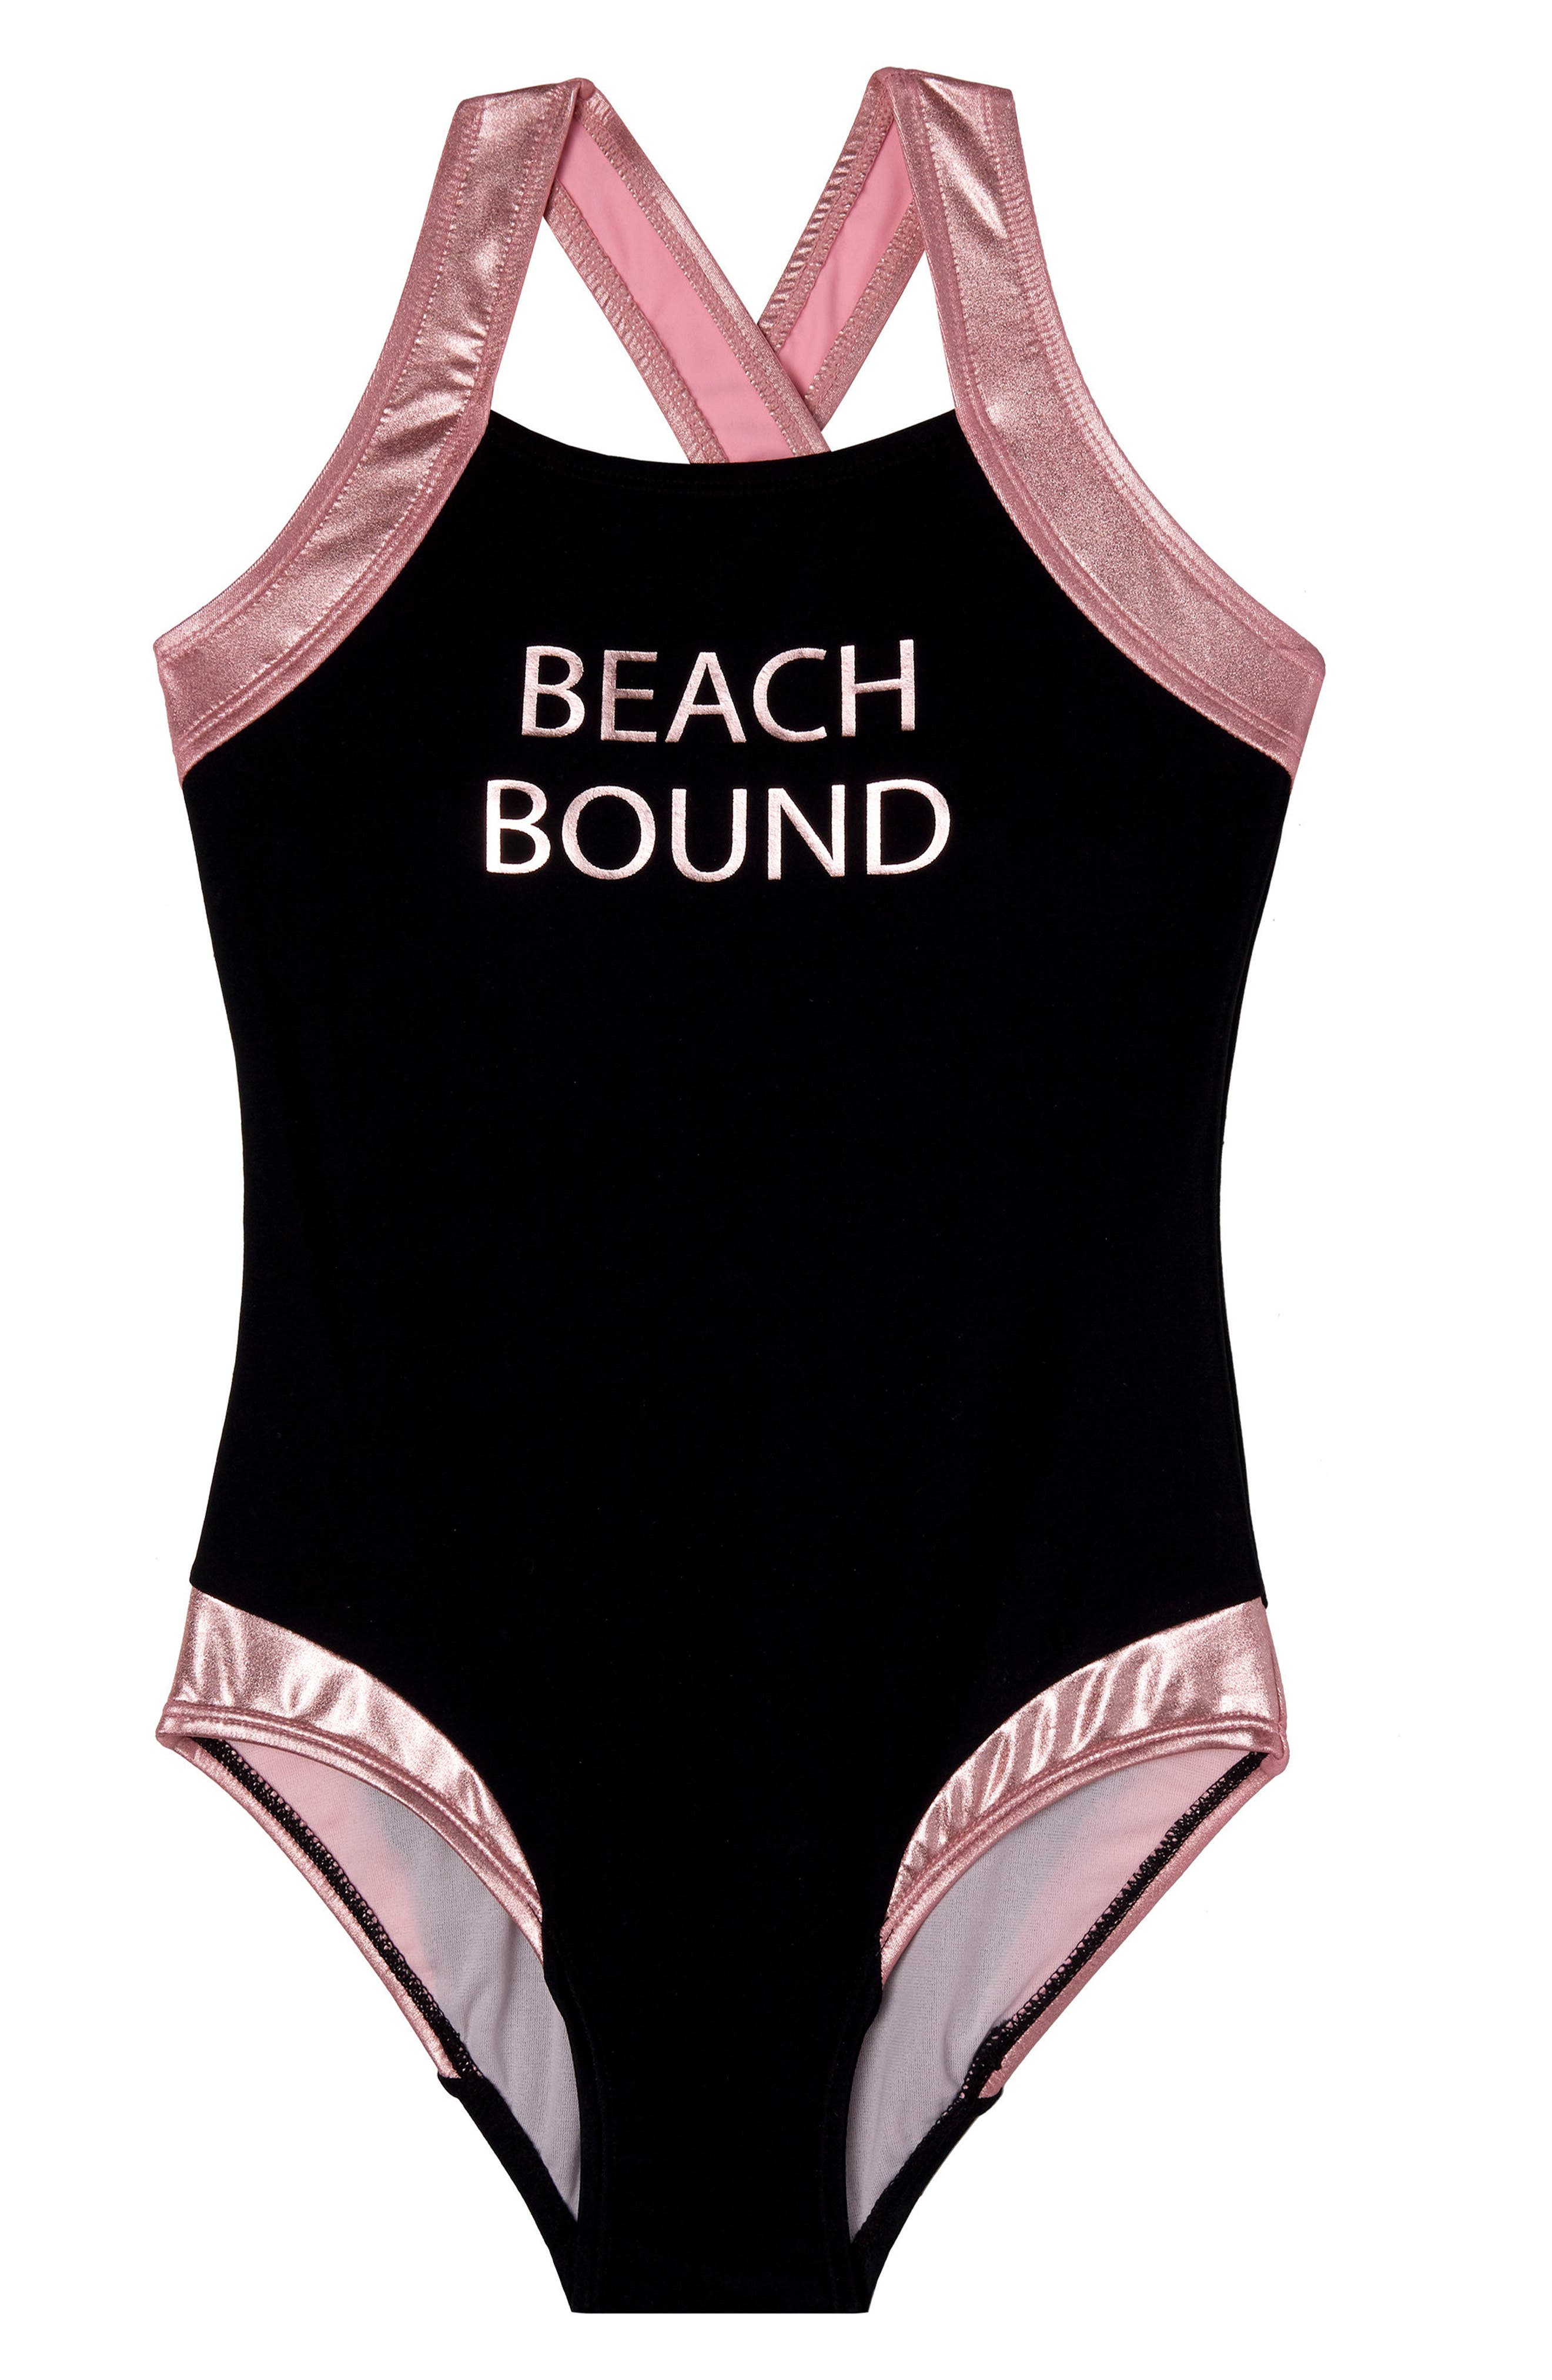 Beach Bound One-Piece Swimsuit,                             Main thumbnail 1, color,                             001